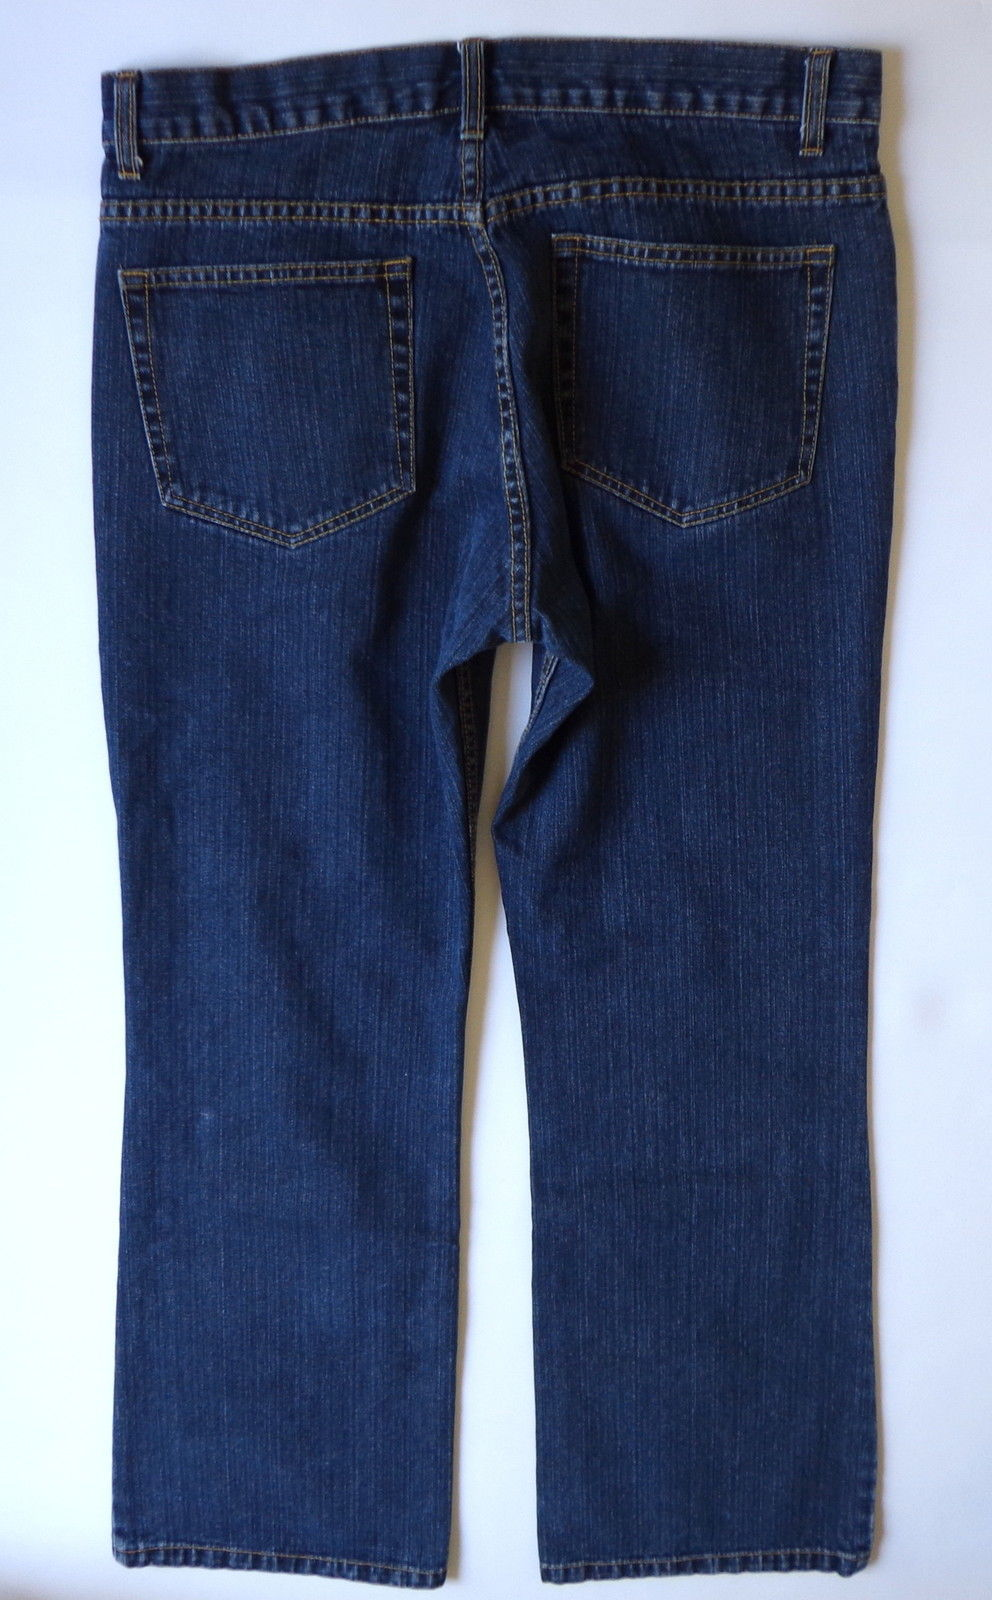 Mens Jeans 33 x 31 Kenneth Cole Reaction and 32 similar items